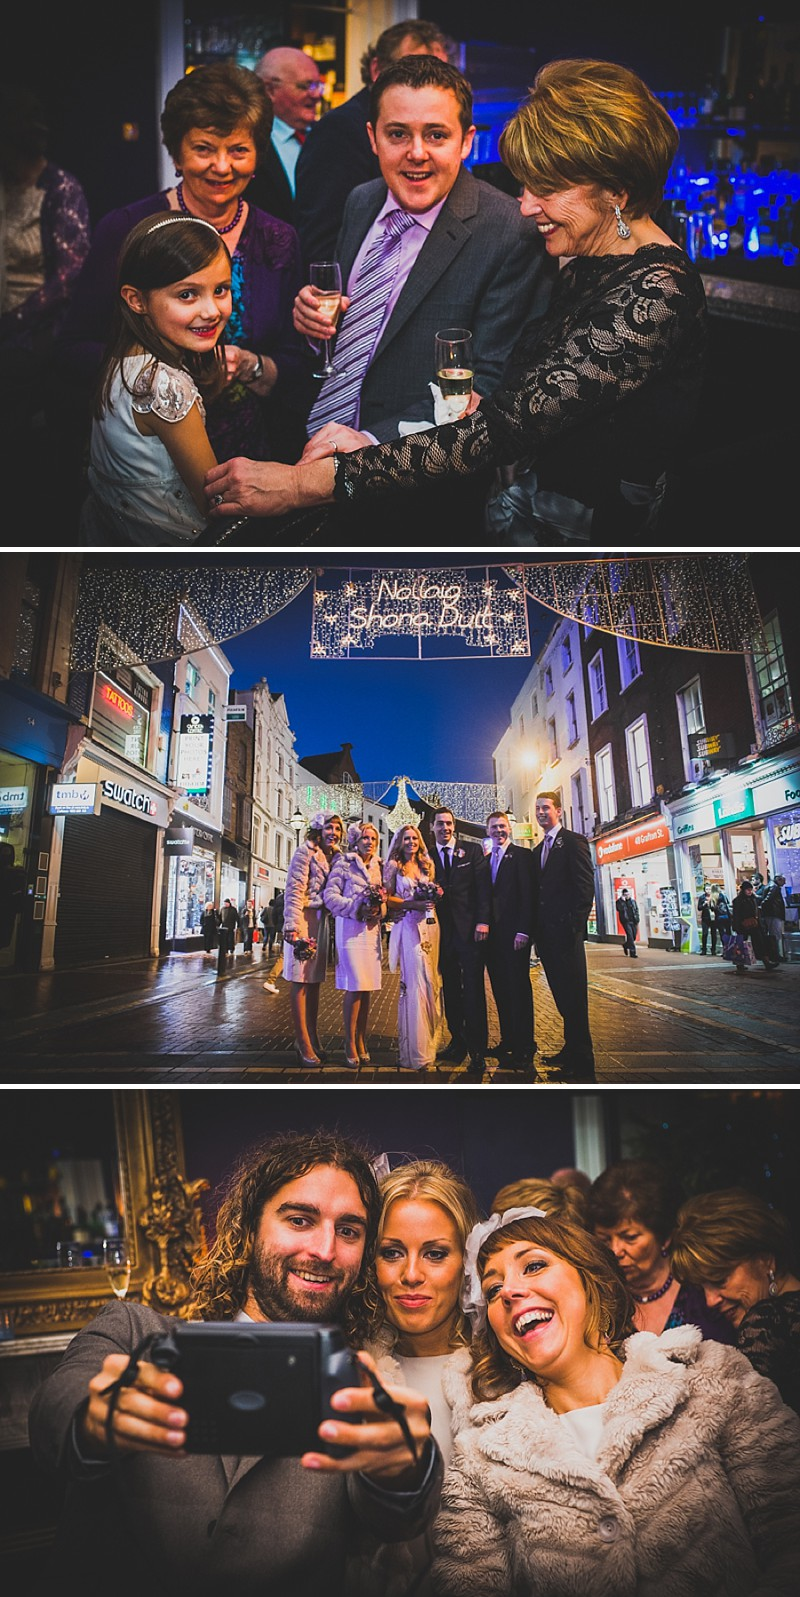 Decadent New Years Eve Wedding In Dublin With Bride In Eden By Jenny Packham And Vamp Sandals By Jimmy Choo And Groom In Navy Reiss Suit With Images From Explore Light Photography_0010